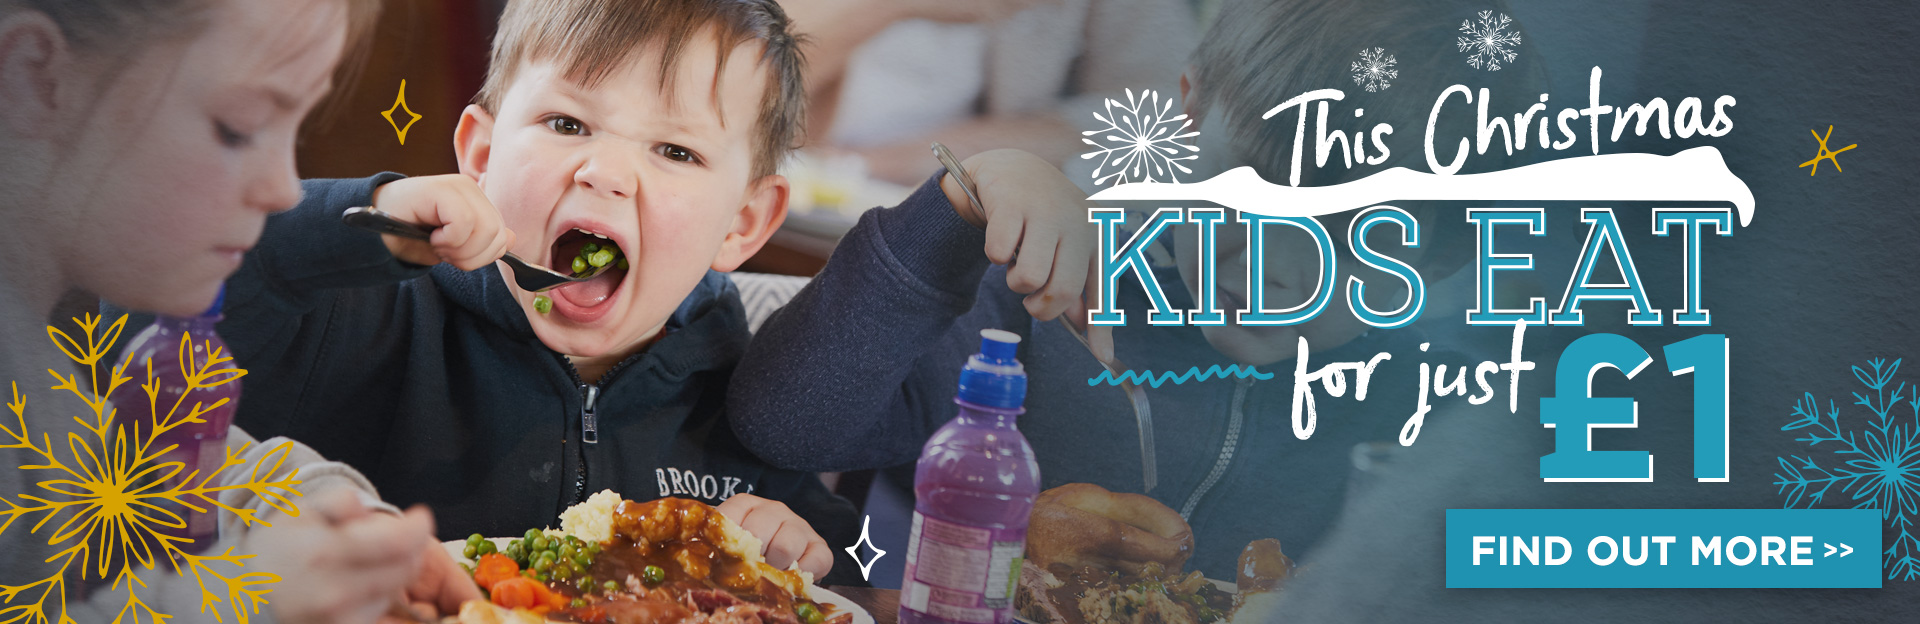 Kids eat for £1 this Christmas!